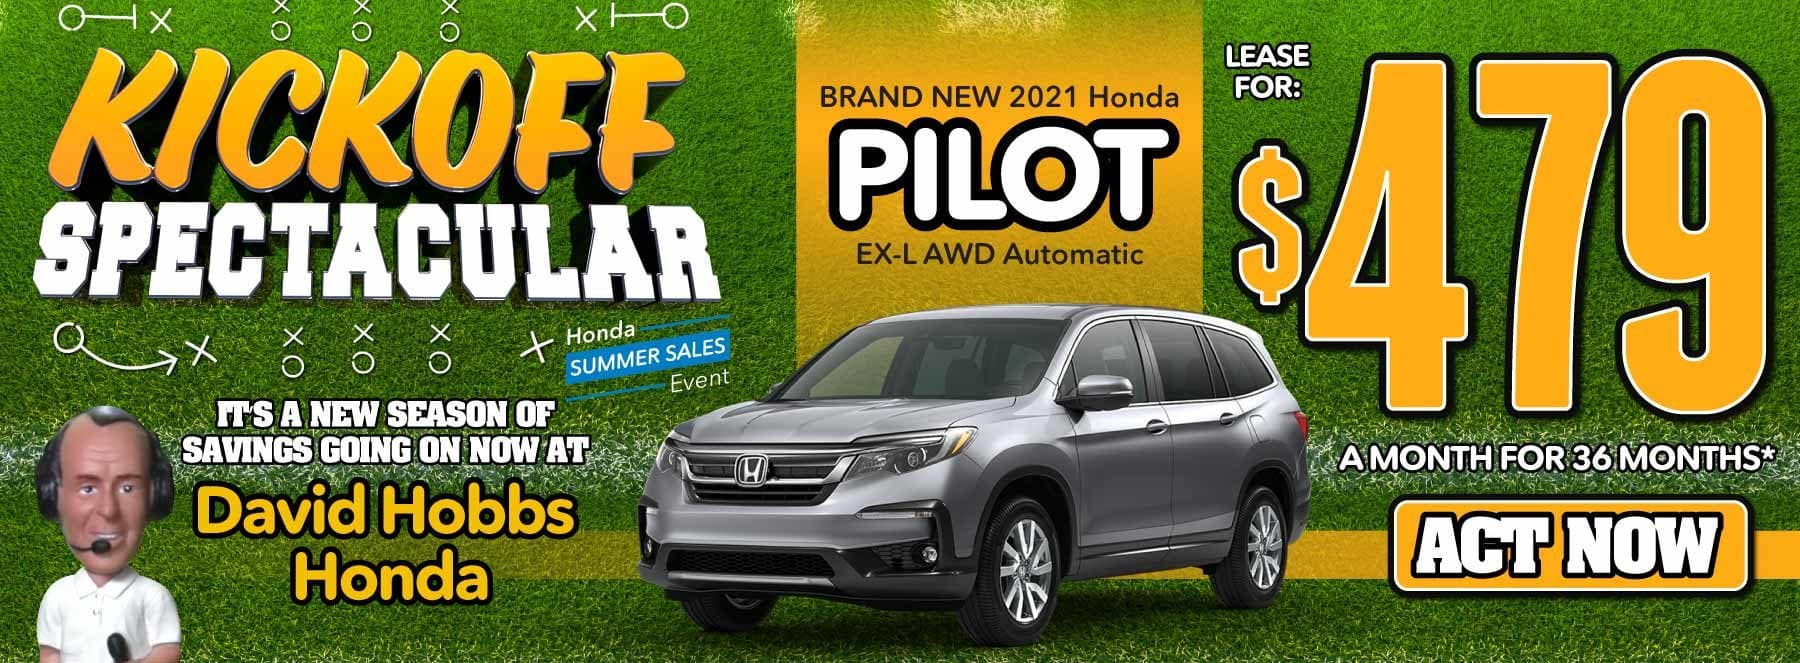 Brand New 2021 Honda Pilot EX-L AWD Automatic - Lease for $479 for 36 Mos. — ACT NOW